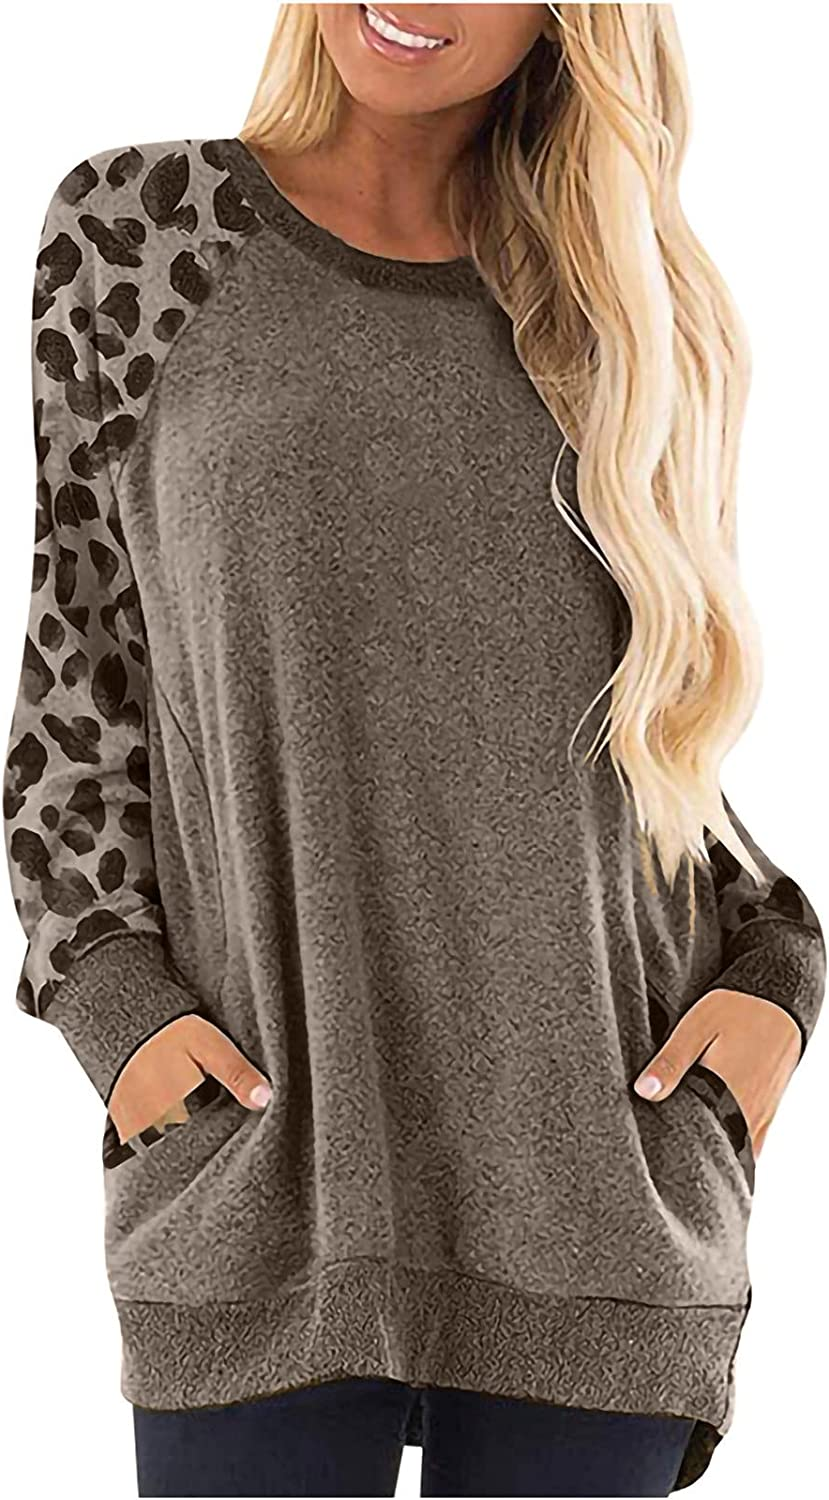 DOYIMBO Leopard Long Sleeve Tops for Women O-Neck Sweatshirt Side Pockets Blouse Color Block Plus Size Pullover